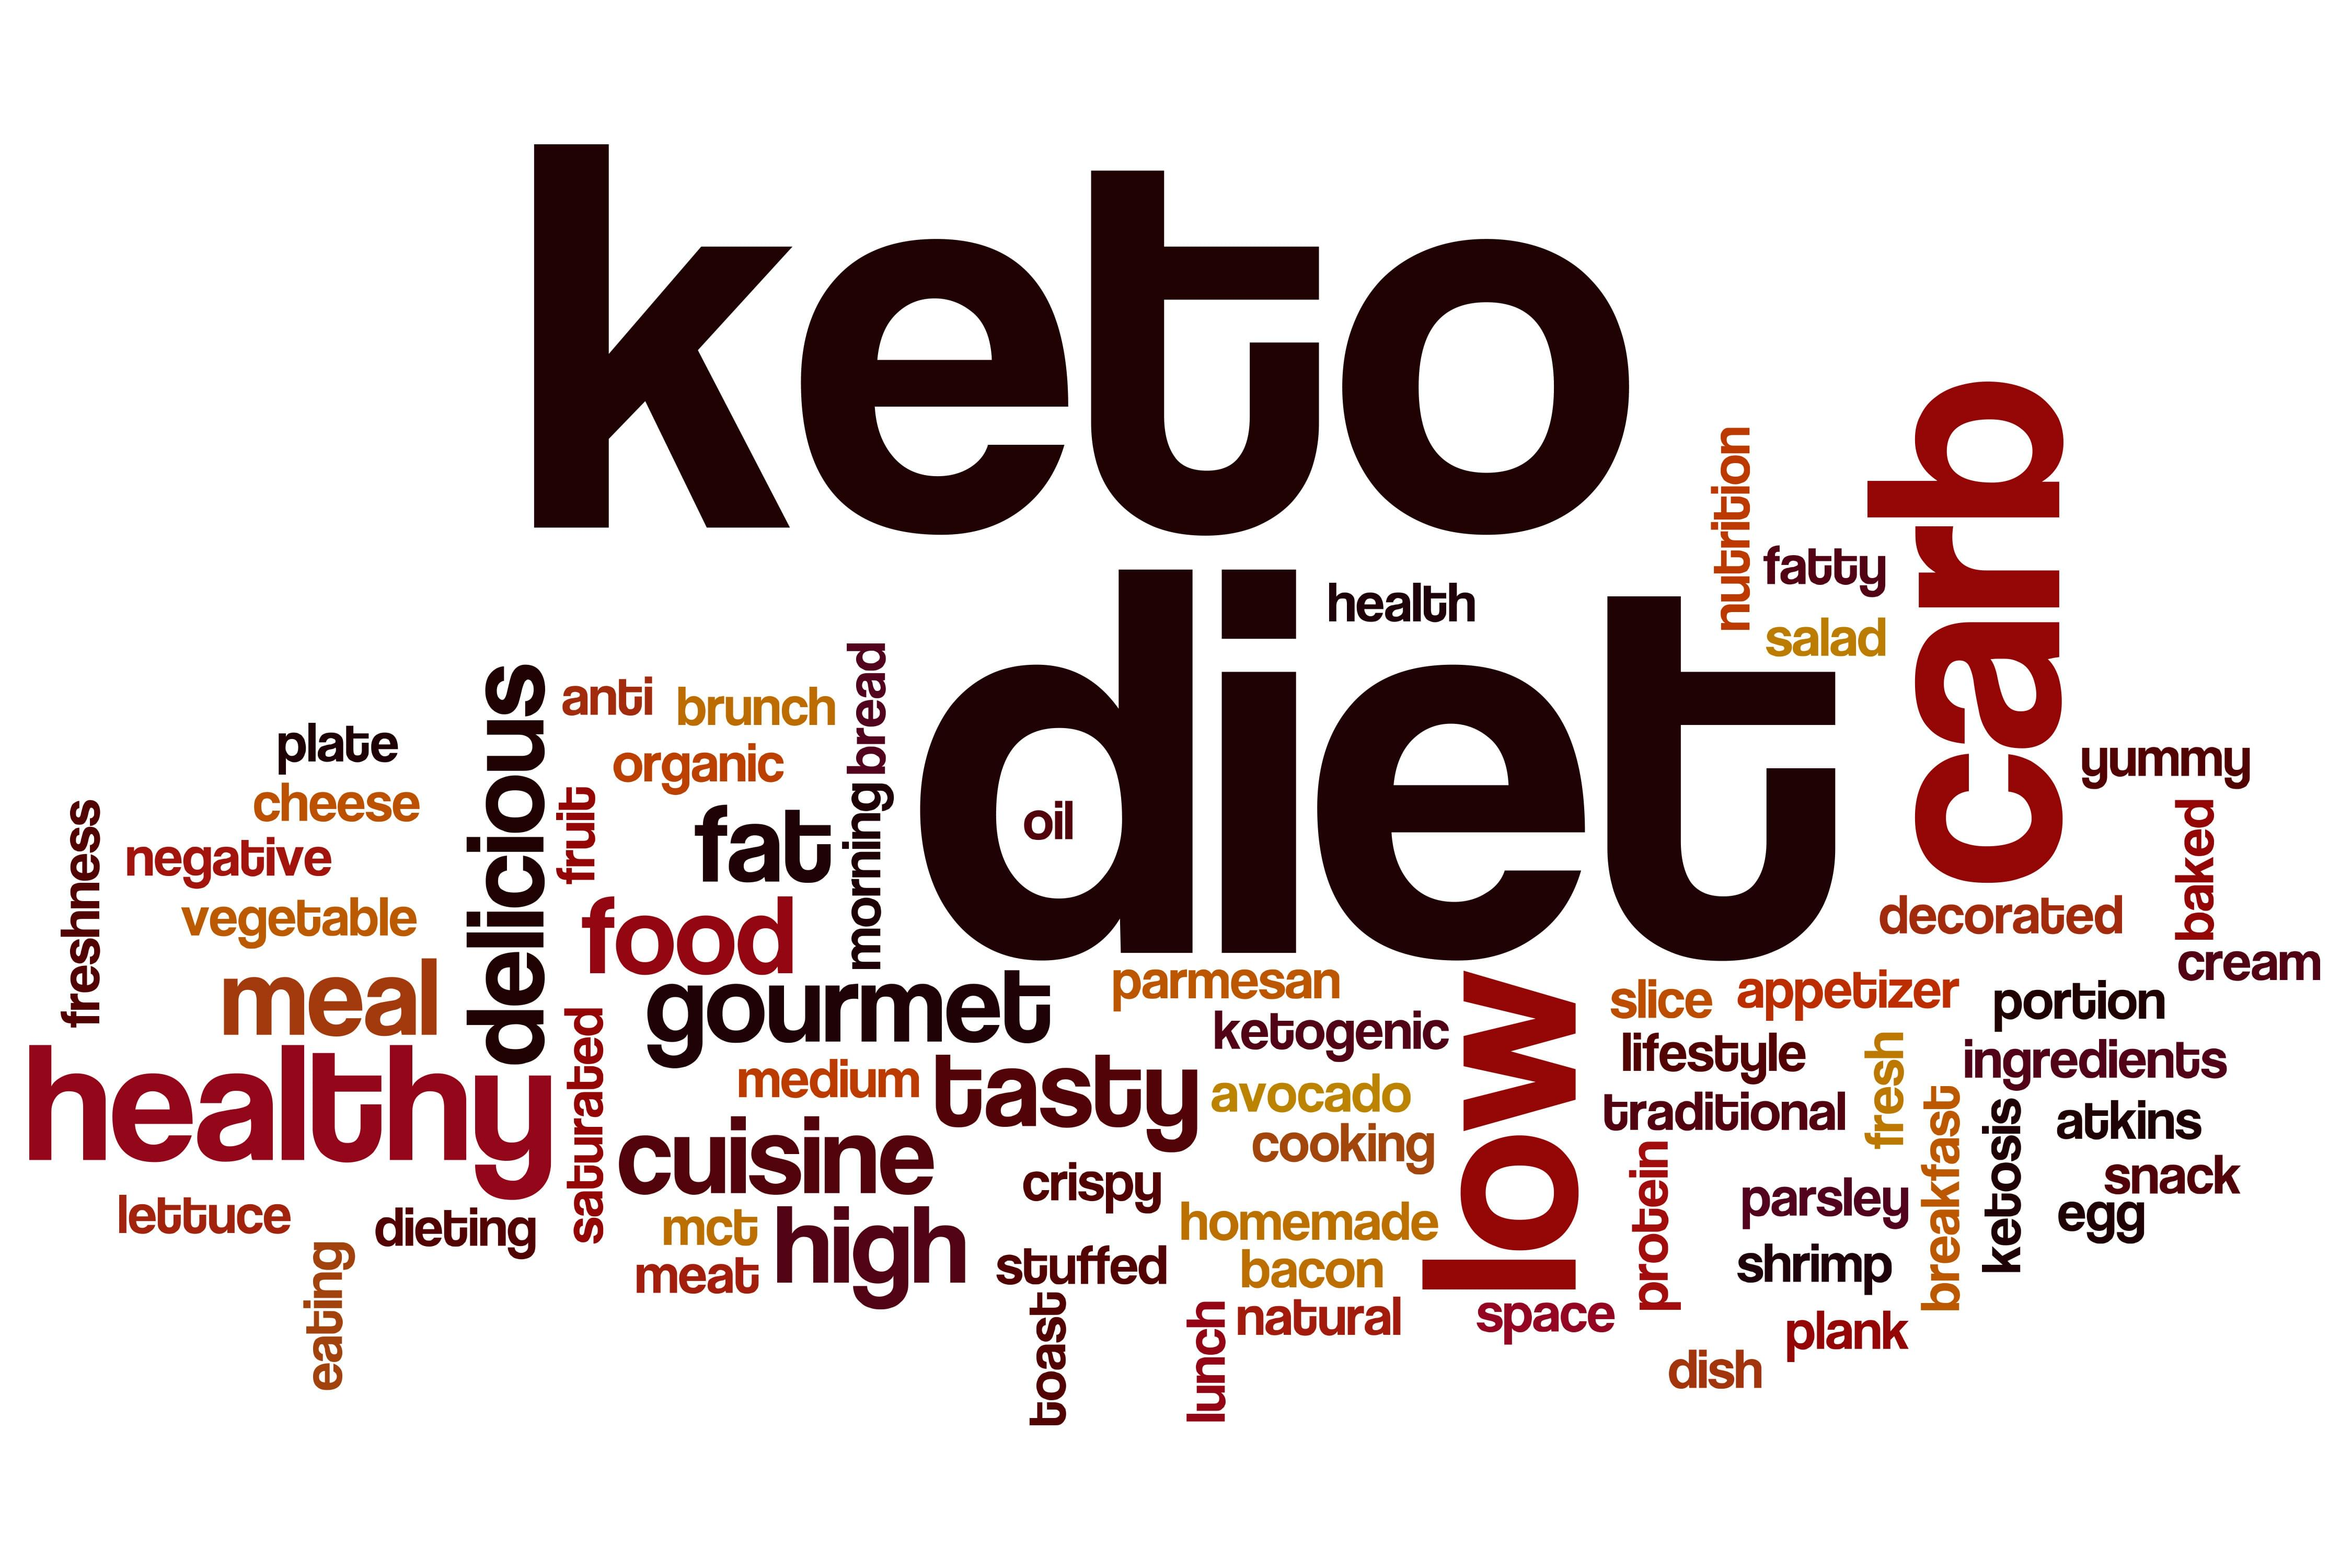 How Does the Keto Diet Work? - Ketogenic Diet Resource